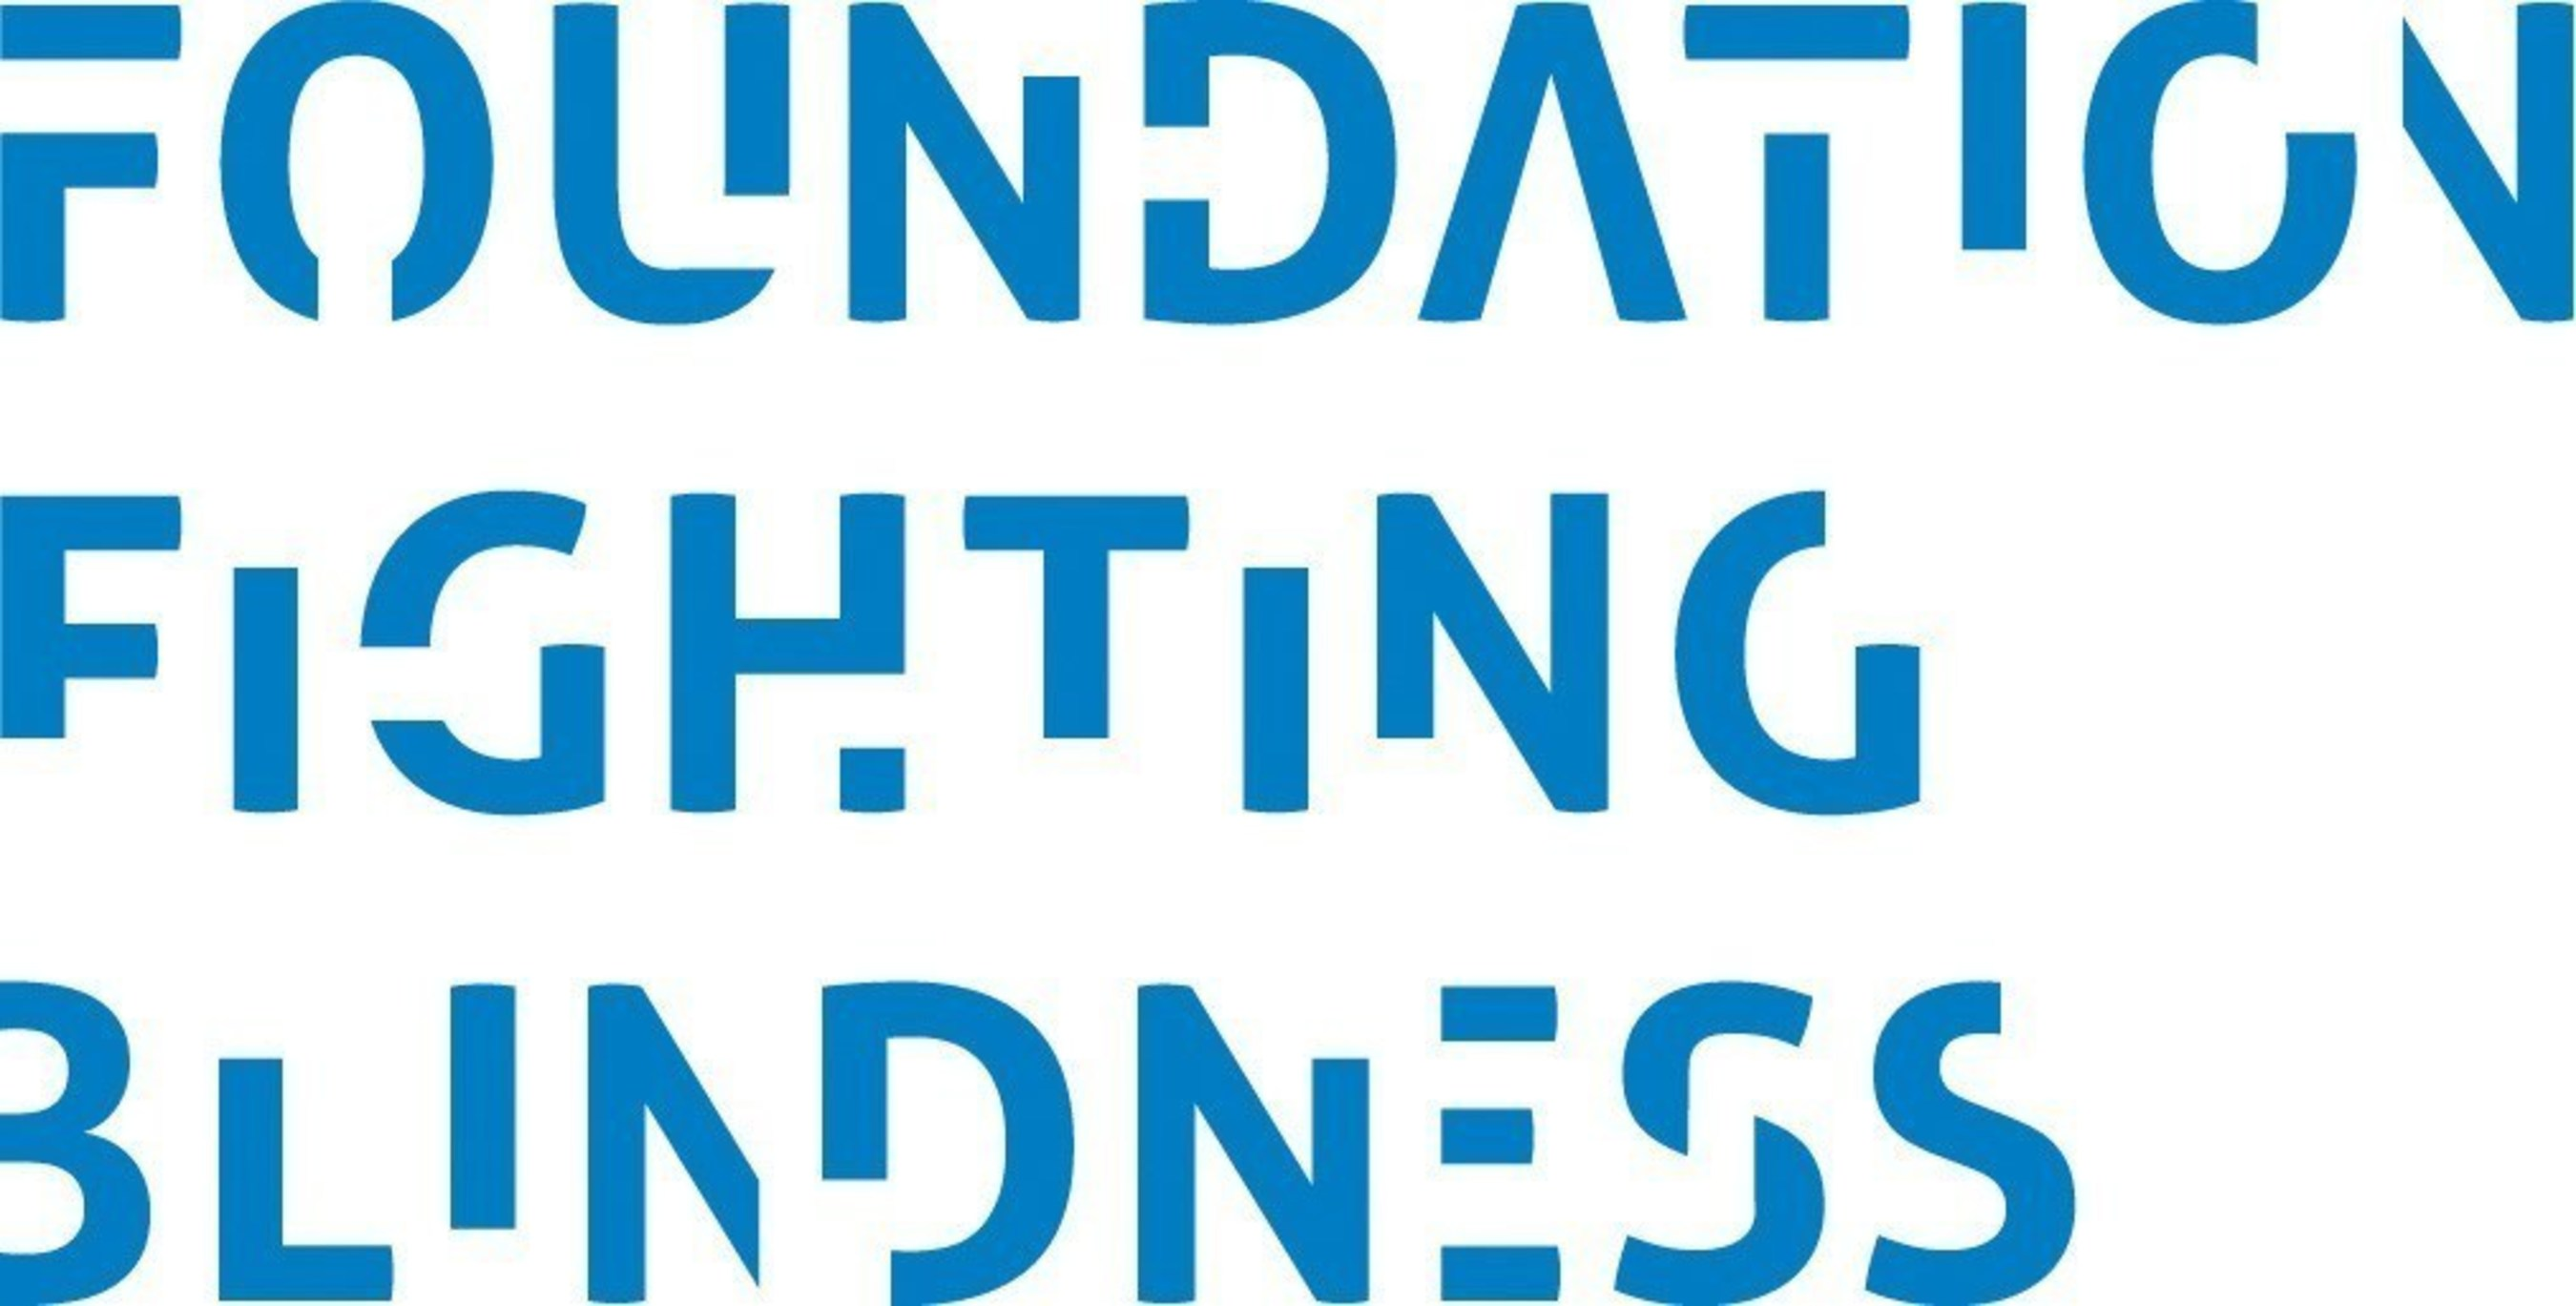 Foundation Fighting Blindness Launches #HowEyeSeeIt Campaign to Raise Awareness, Funds for Retinal Degenerative Disease Research